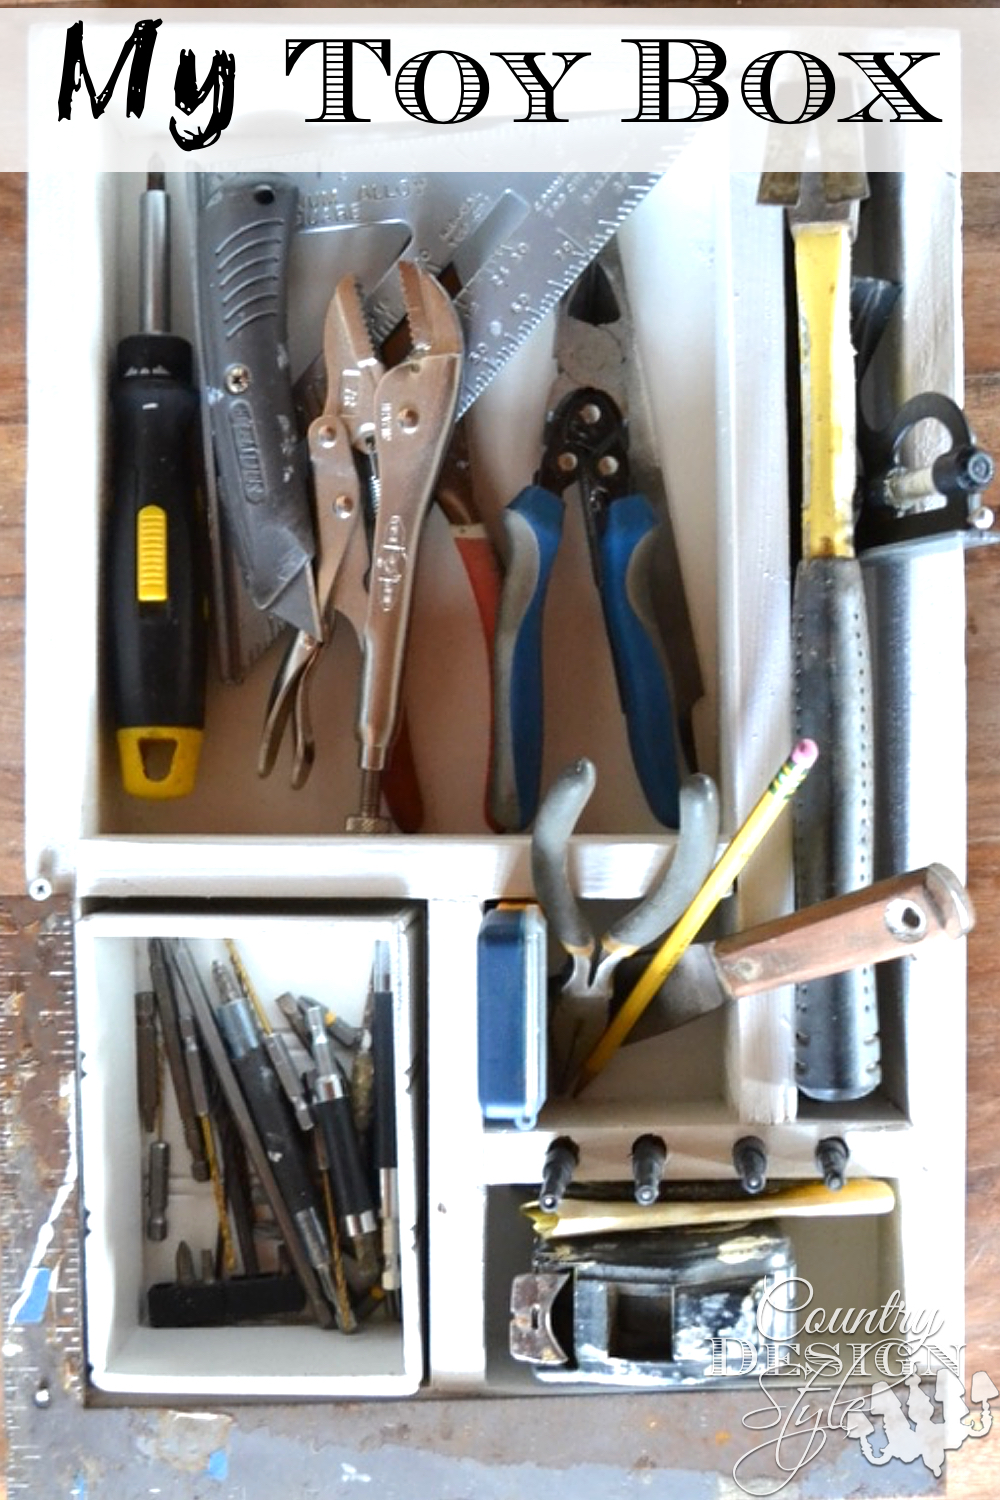 Wouldn't it be great to have your most used crafting tools laid out on a tray? I thought so and I did it. Country Design Style